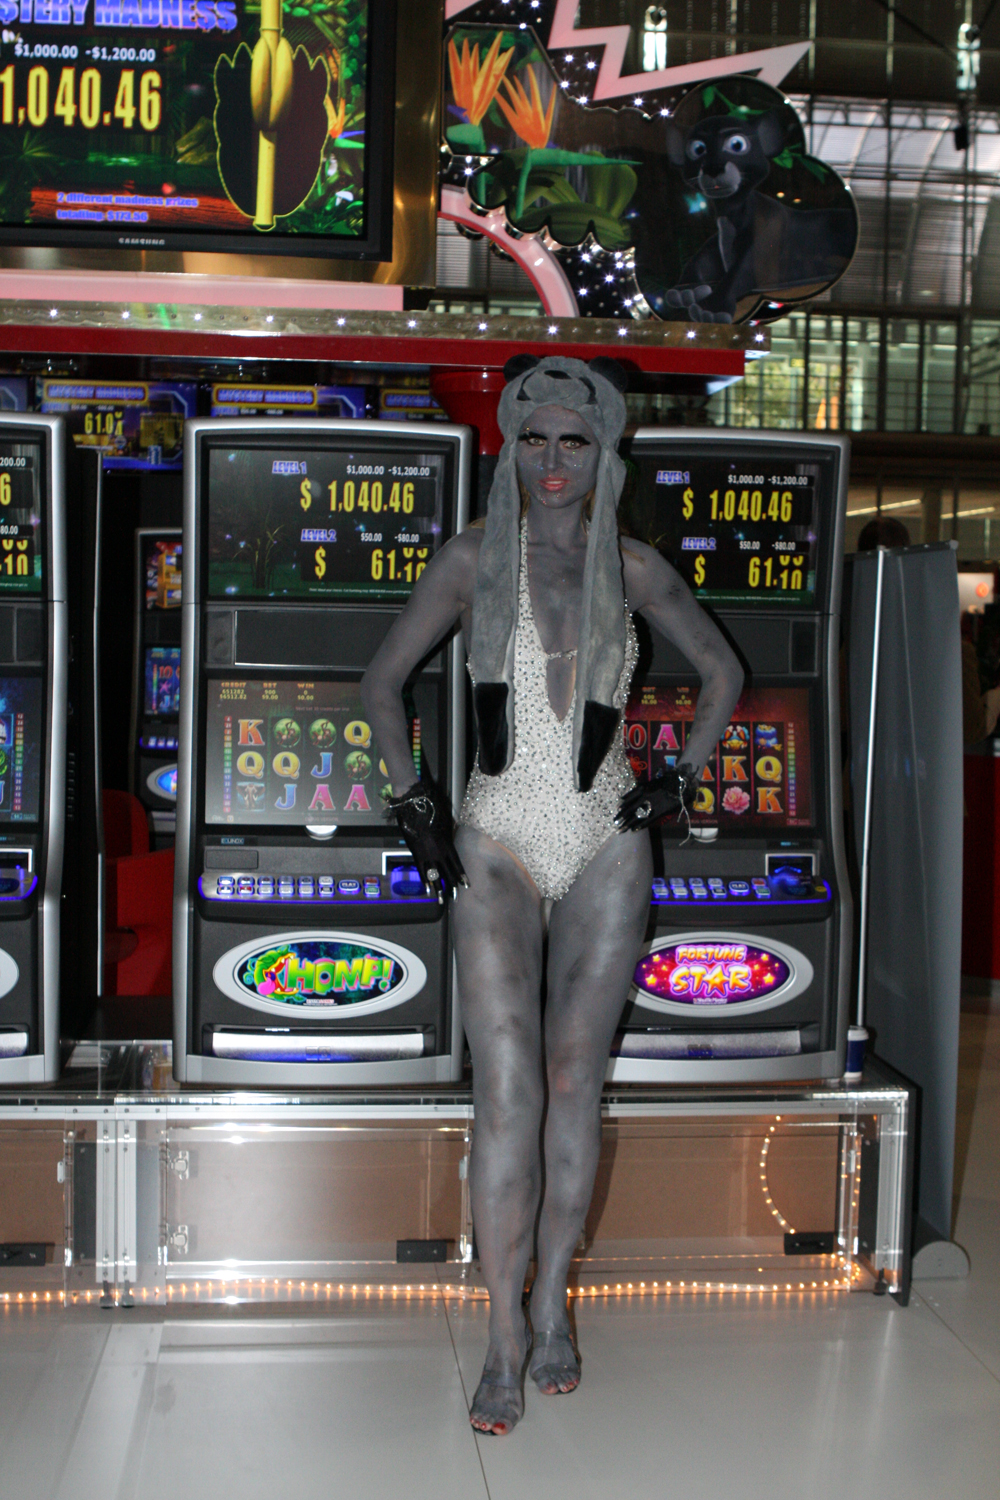 this provided more than ample opportunity for over 750 slot games on display. The Australasian Gaming Expo is by far the largest event of its type in Australia